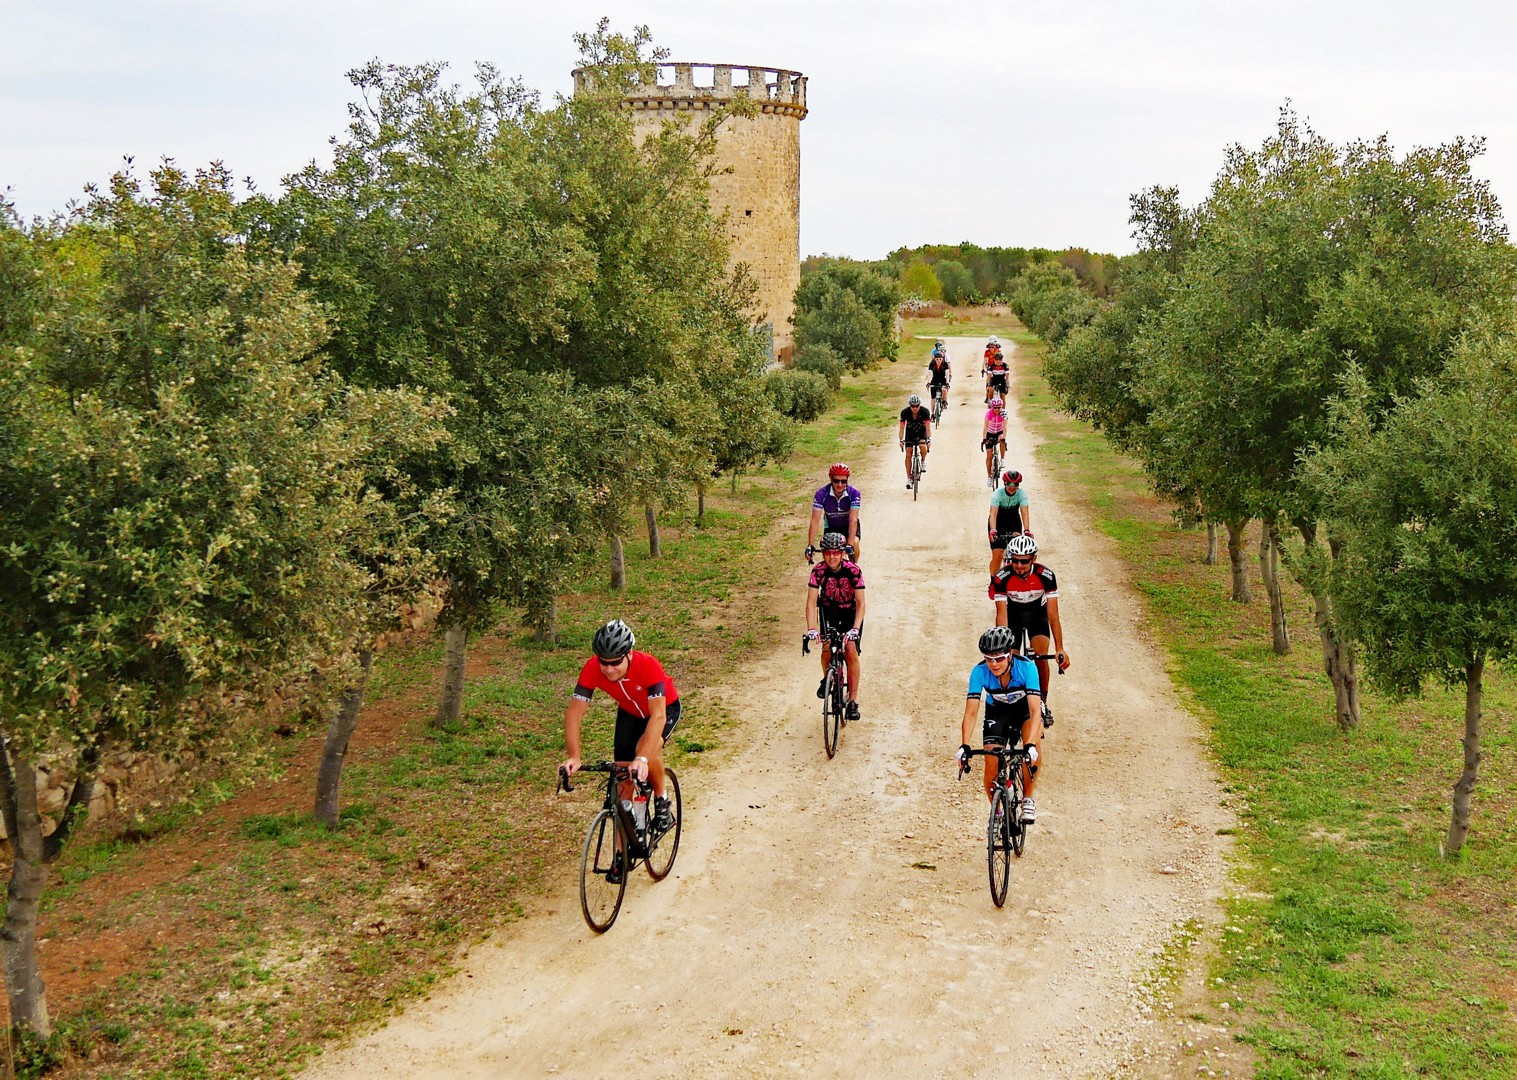 north-to-south-guided-road-cycling-holiday-grand-traverse.jpg - Italy - Grand Traverse - North to South - Guided Road Cycling Holiday (17 days) - Road Cycling